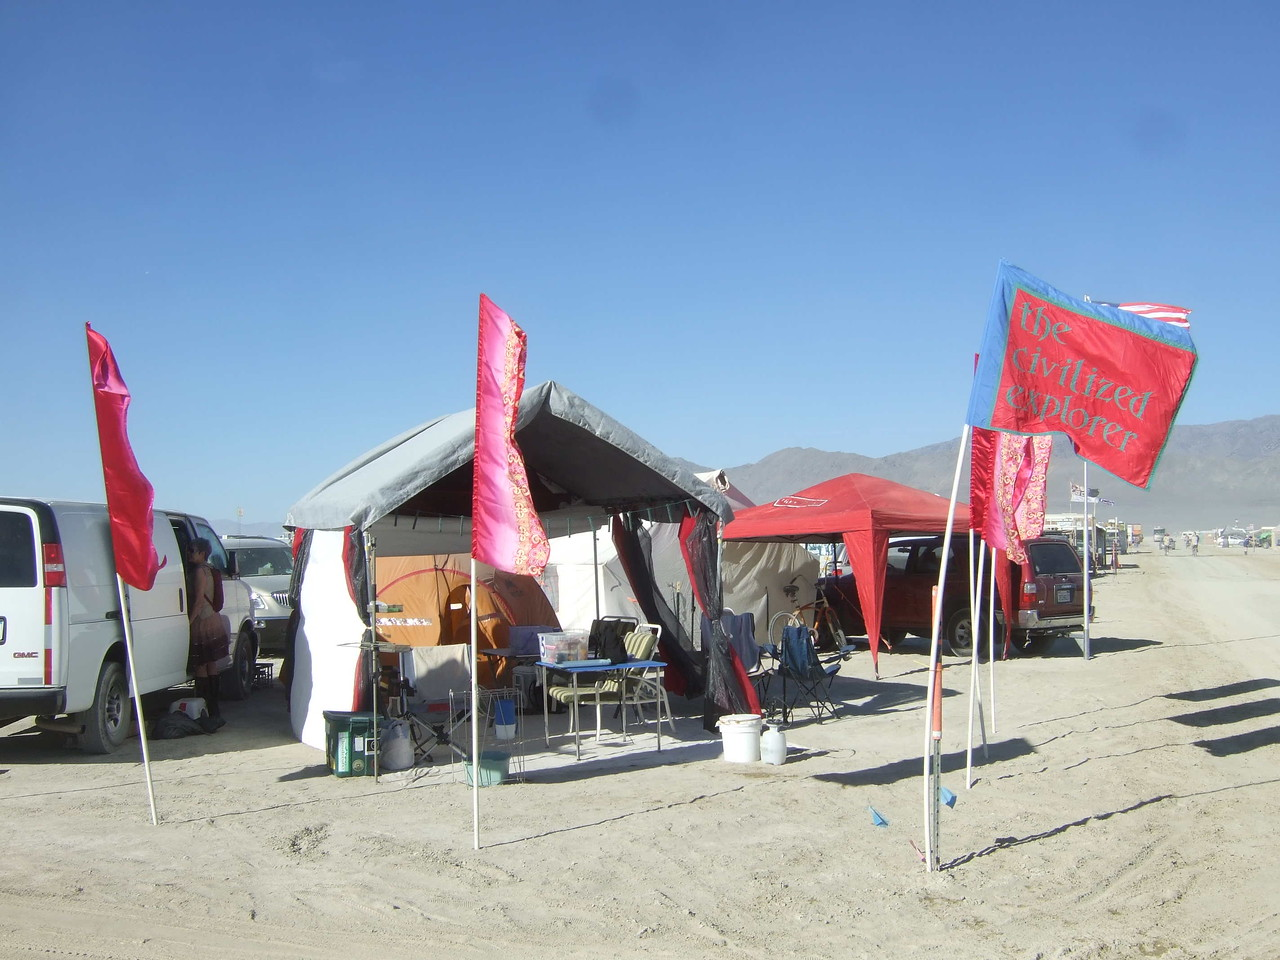 Our camp from the street. Van, shade, tent, and flags. The red shade is our neighbor's.